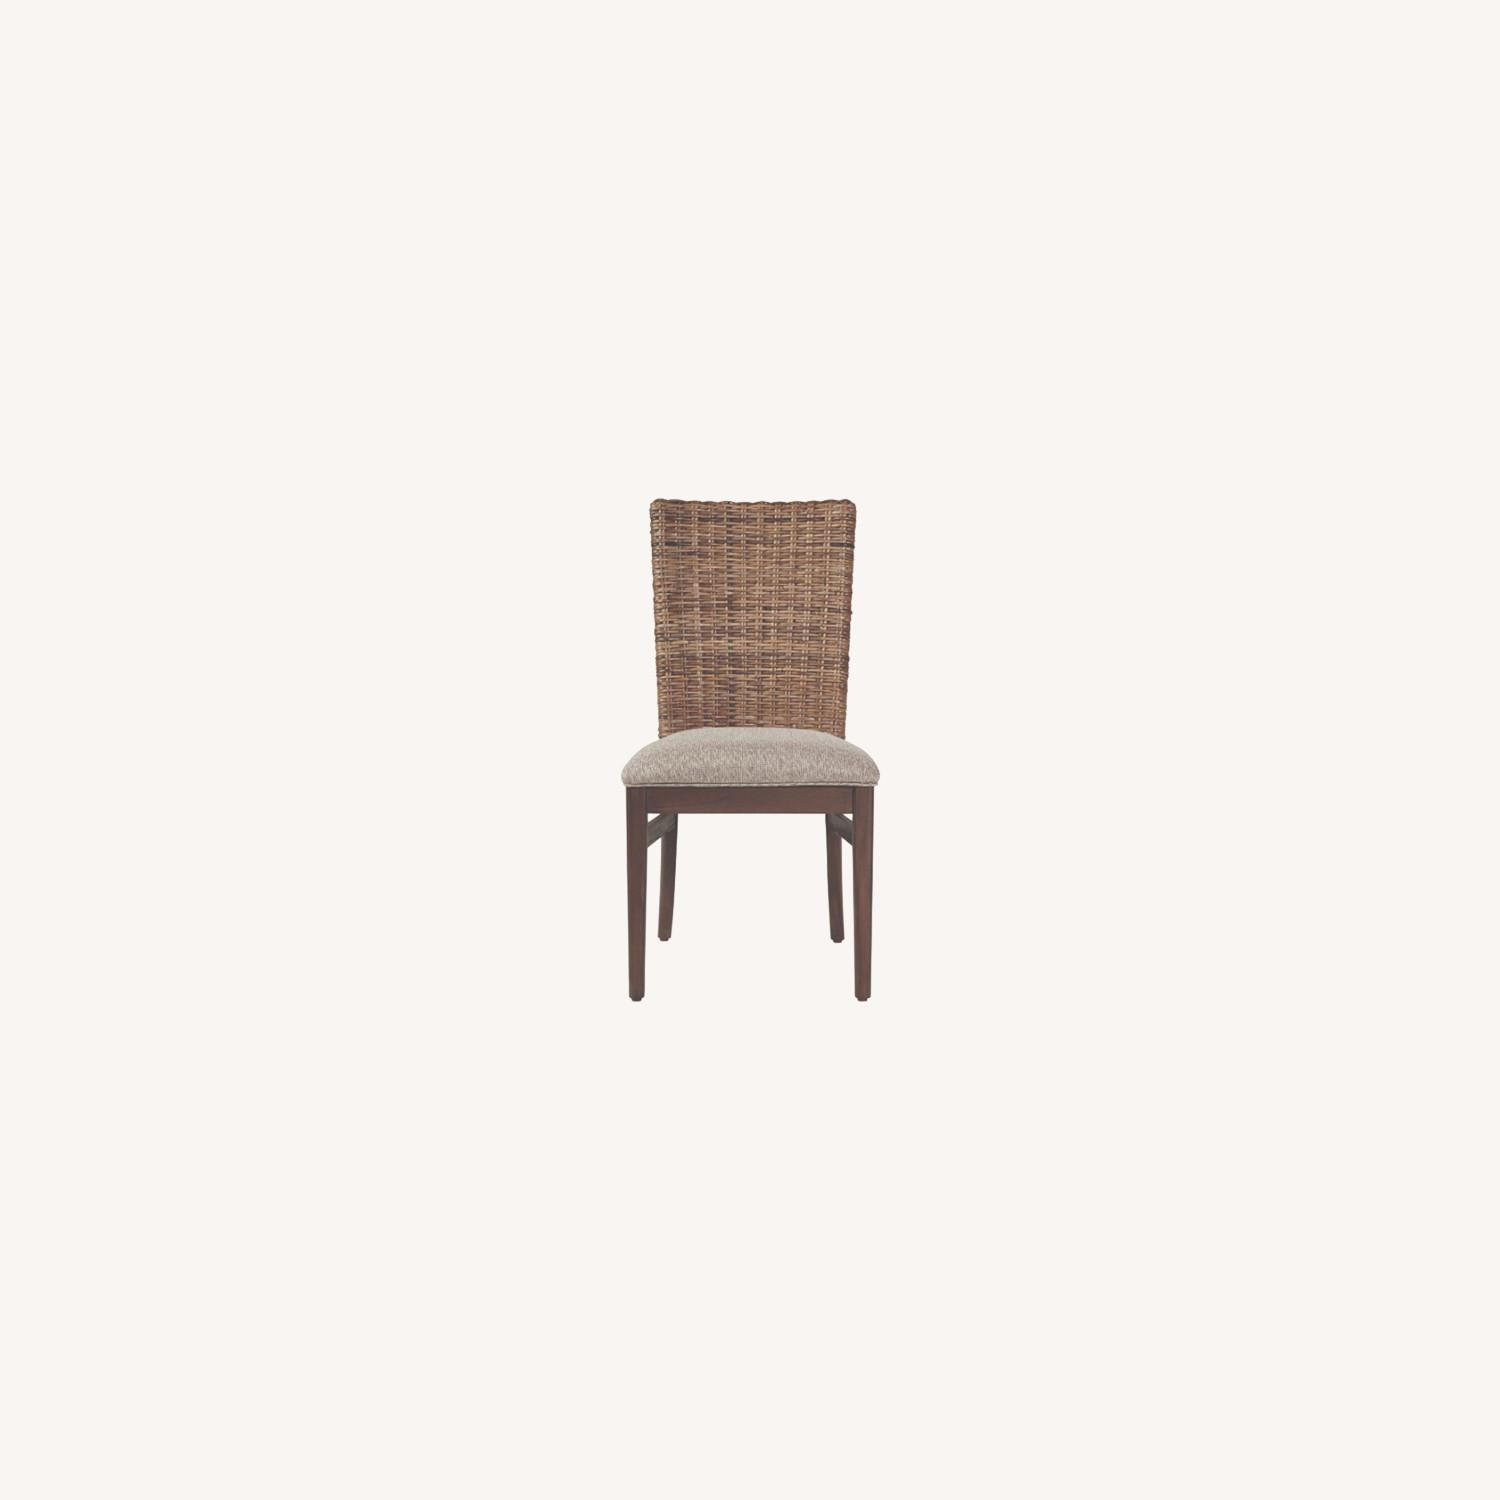 Modern Dining Chair Upholstered In Light Taupe - image-5